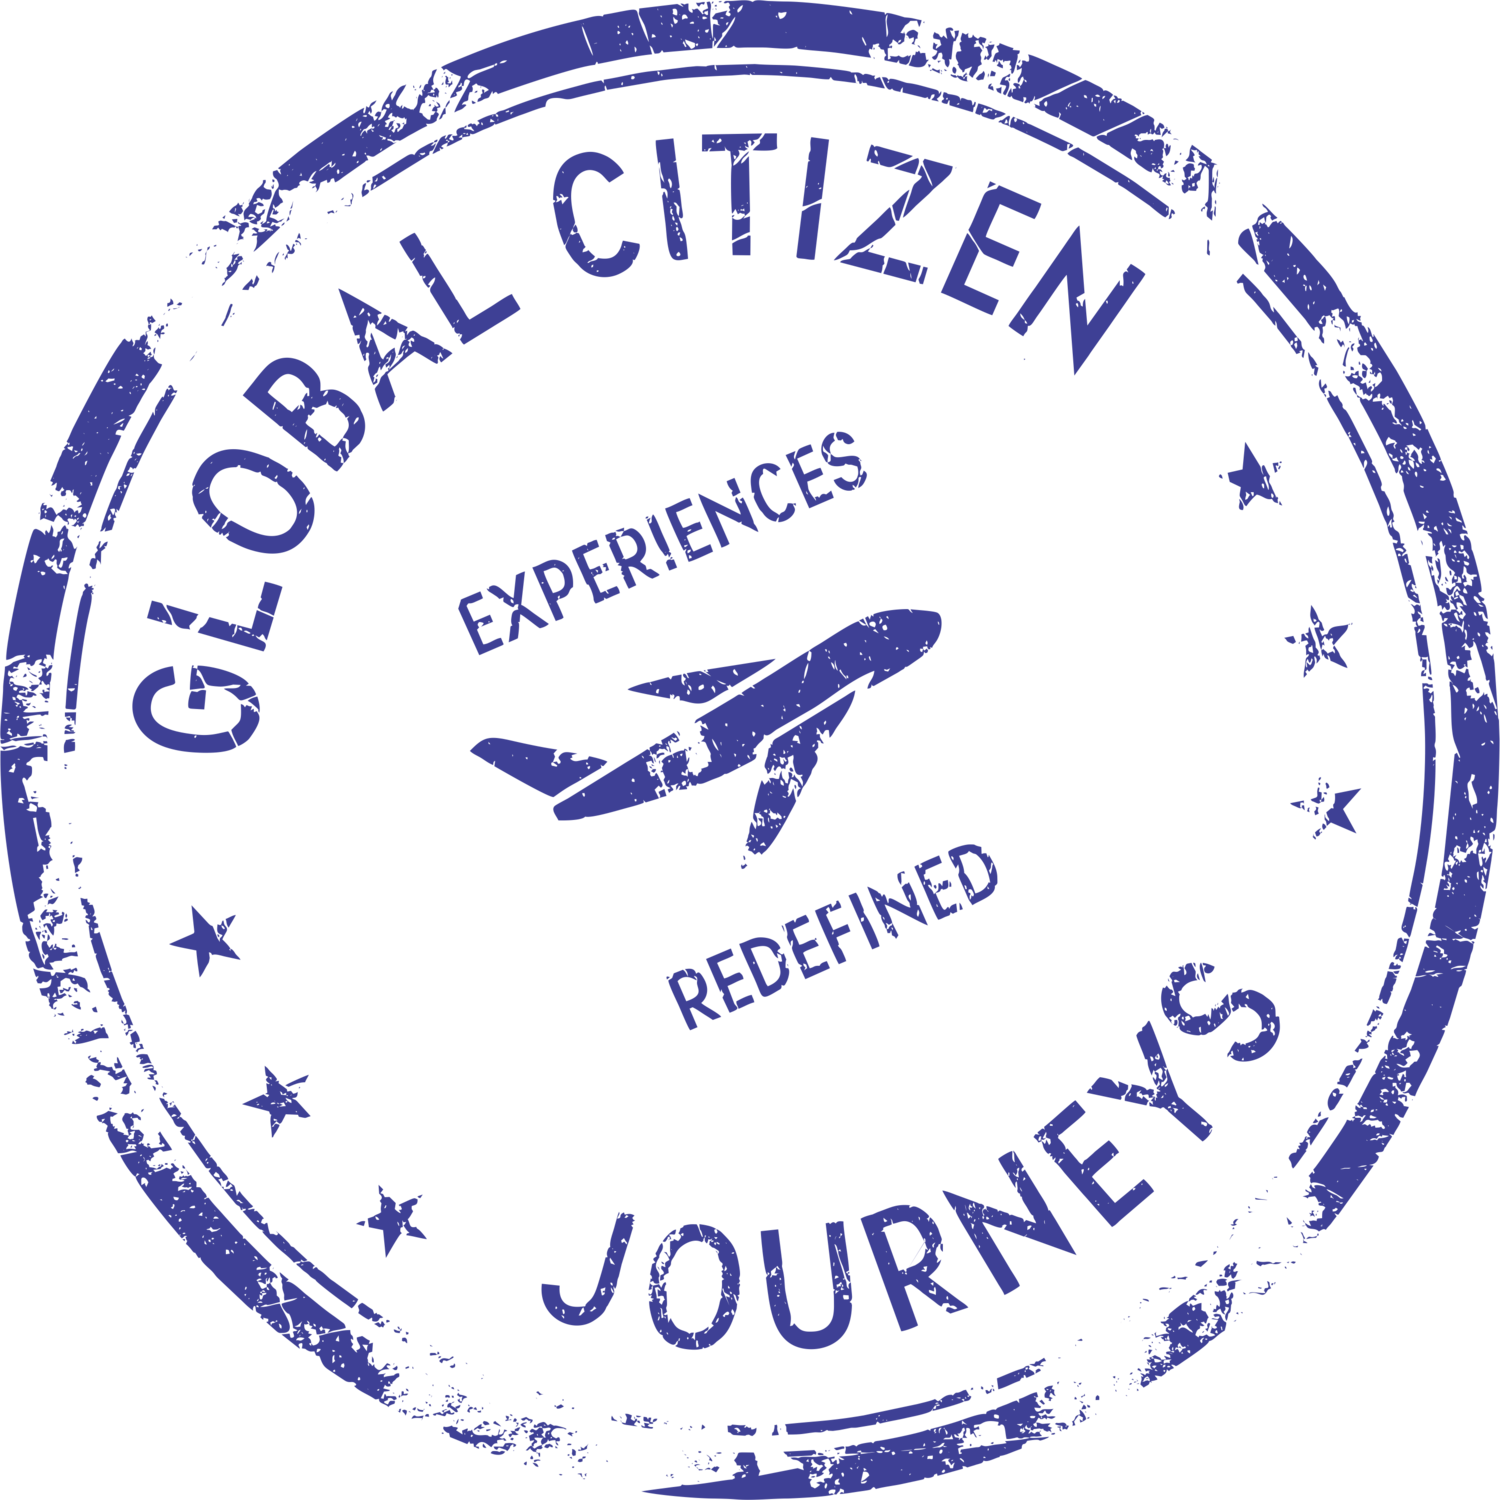 Global Citizen Journeys